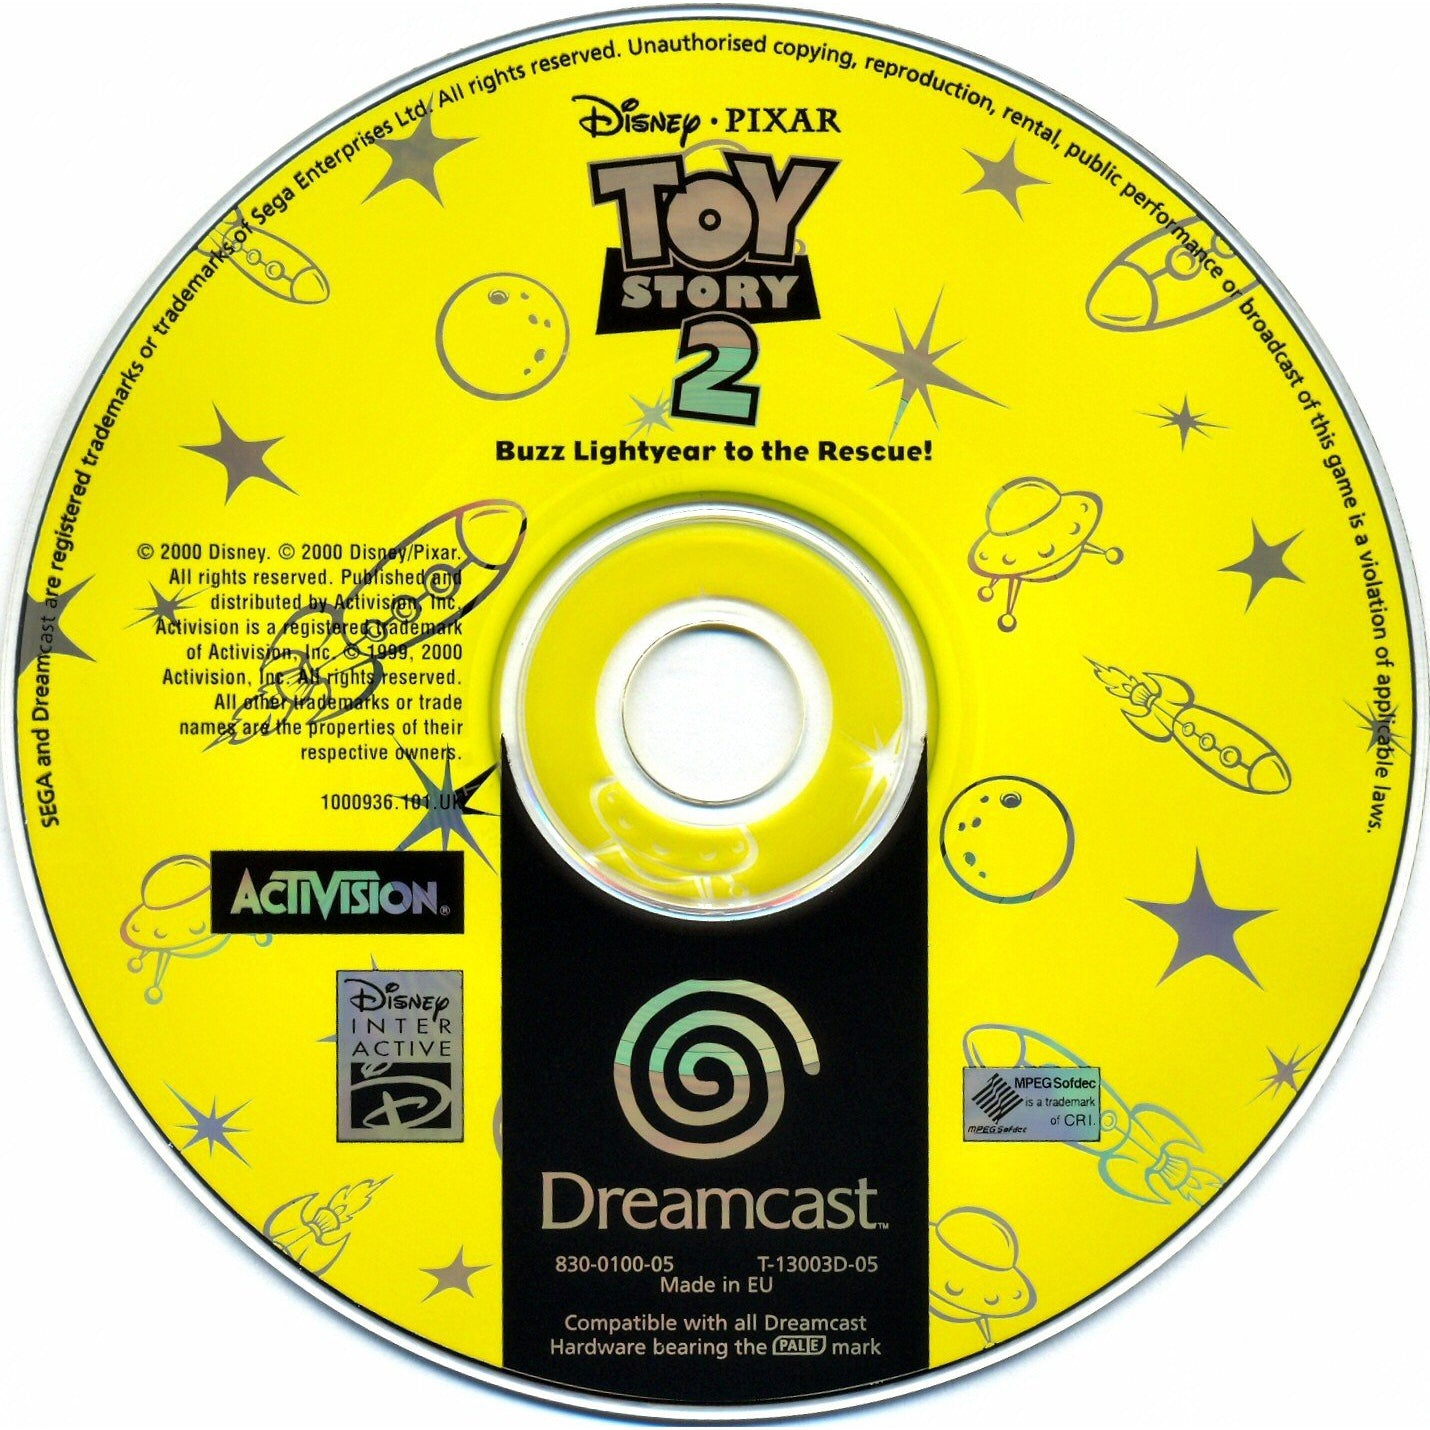 Toy Story 2: Buzz Lightyear to the Rescue! - Sega Dreamcast Game Complete - YourGamingShop.com - Buy, Sell, Trade Video Games Online. 120 Day Warranty. Satisfaction Guaranteed.